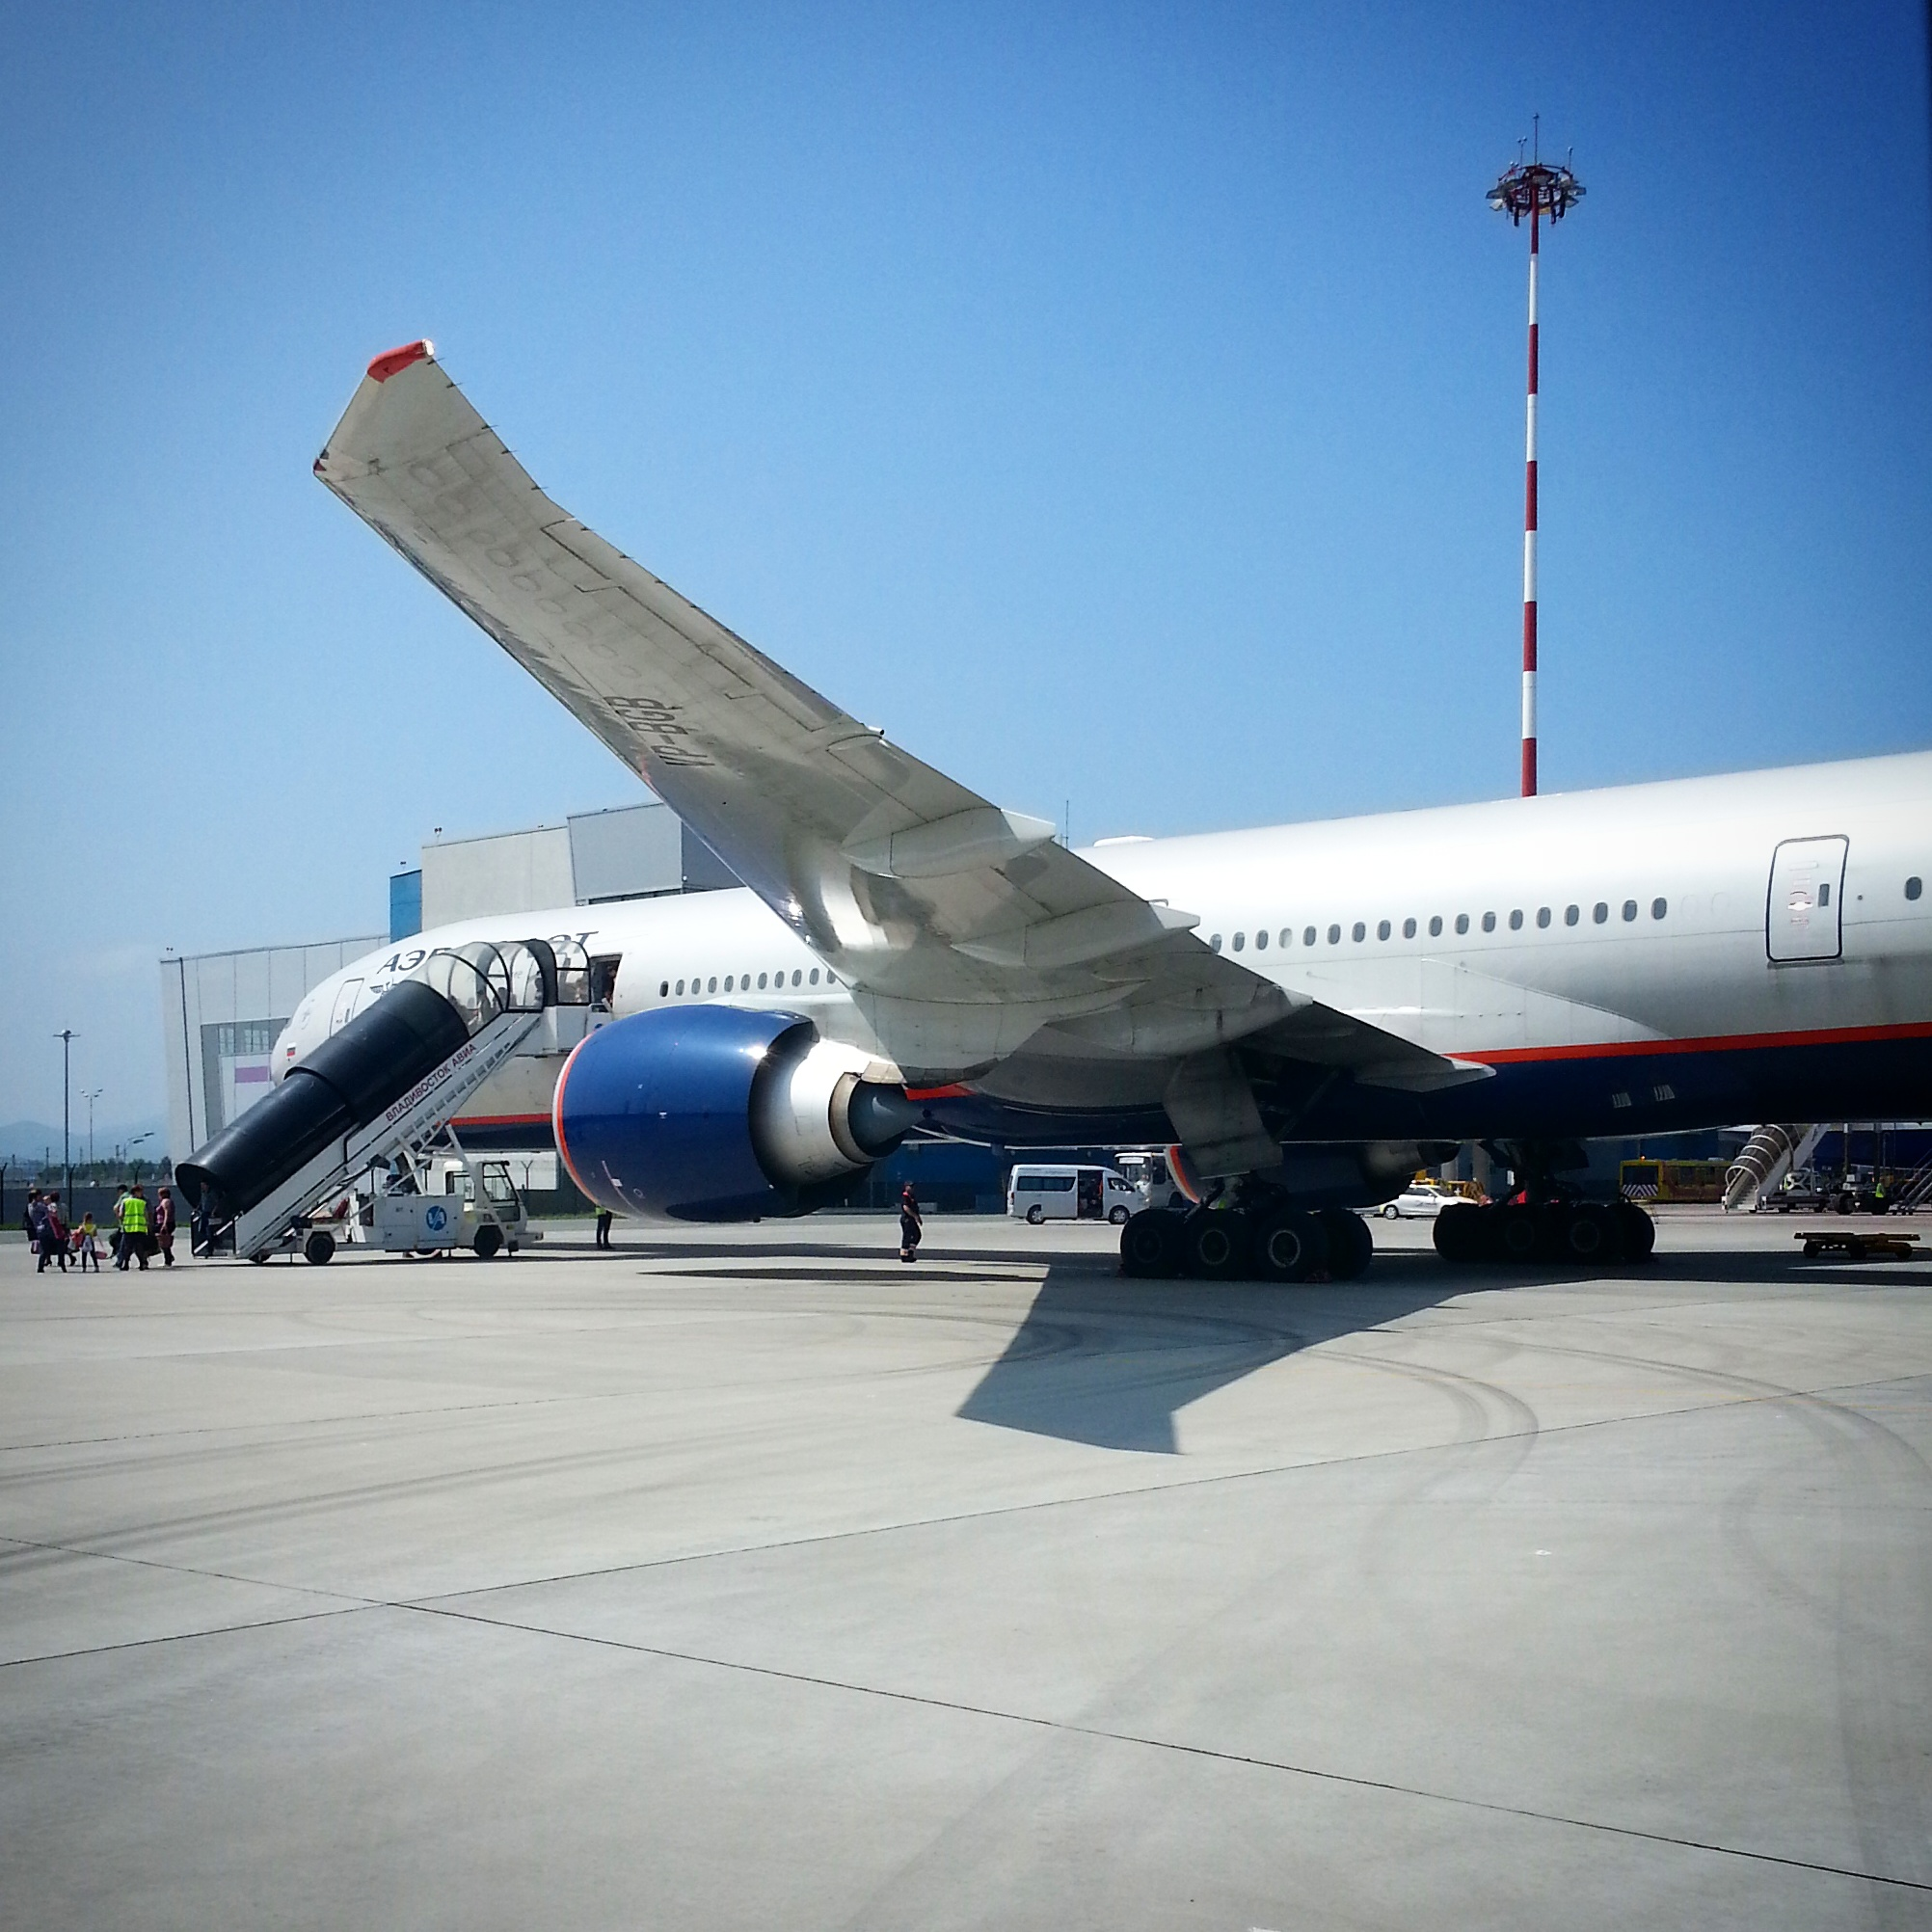 Aeroflot B777 at Vladivostok International Airport